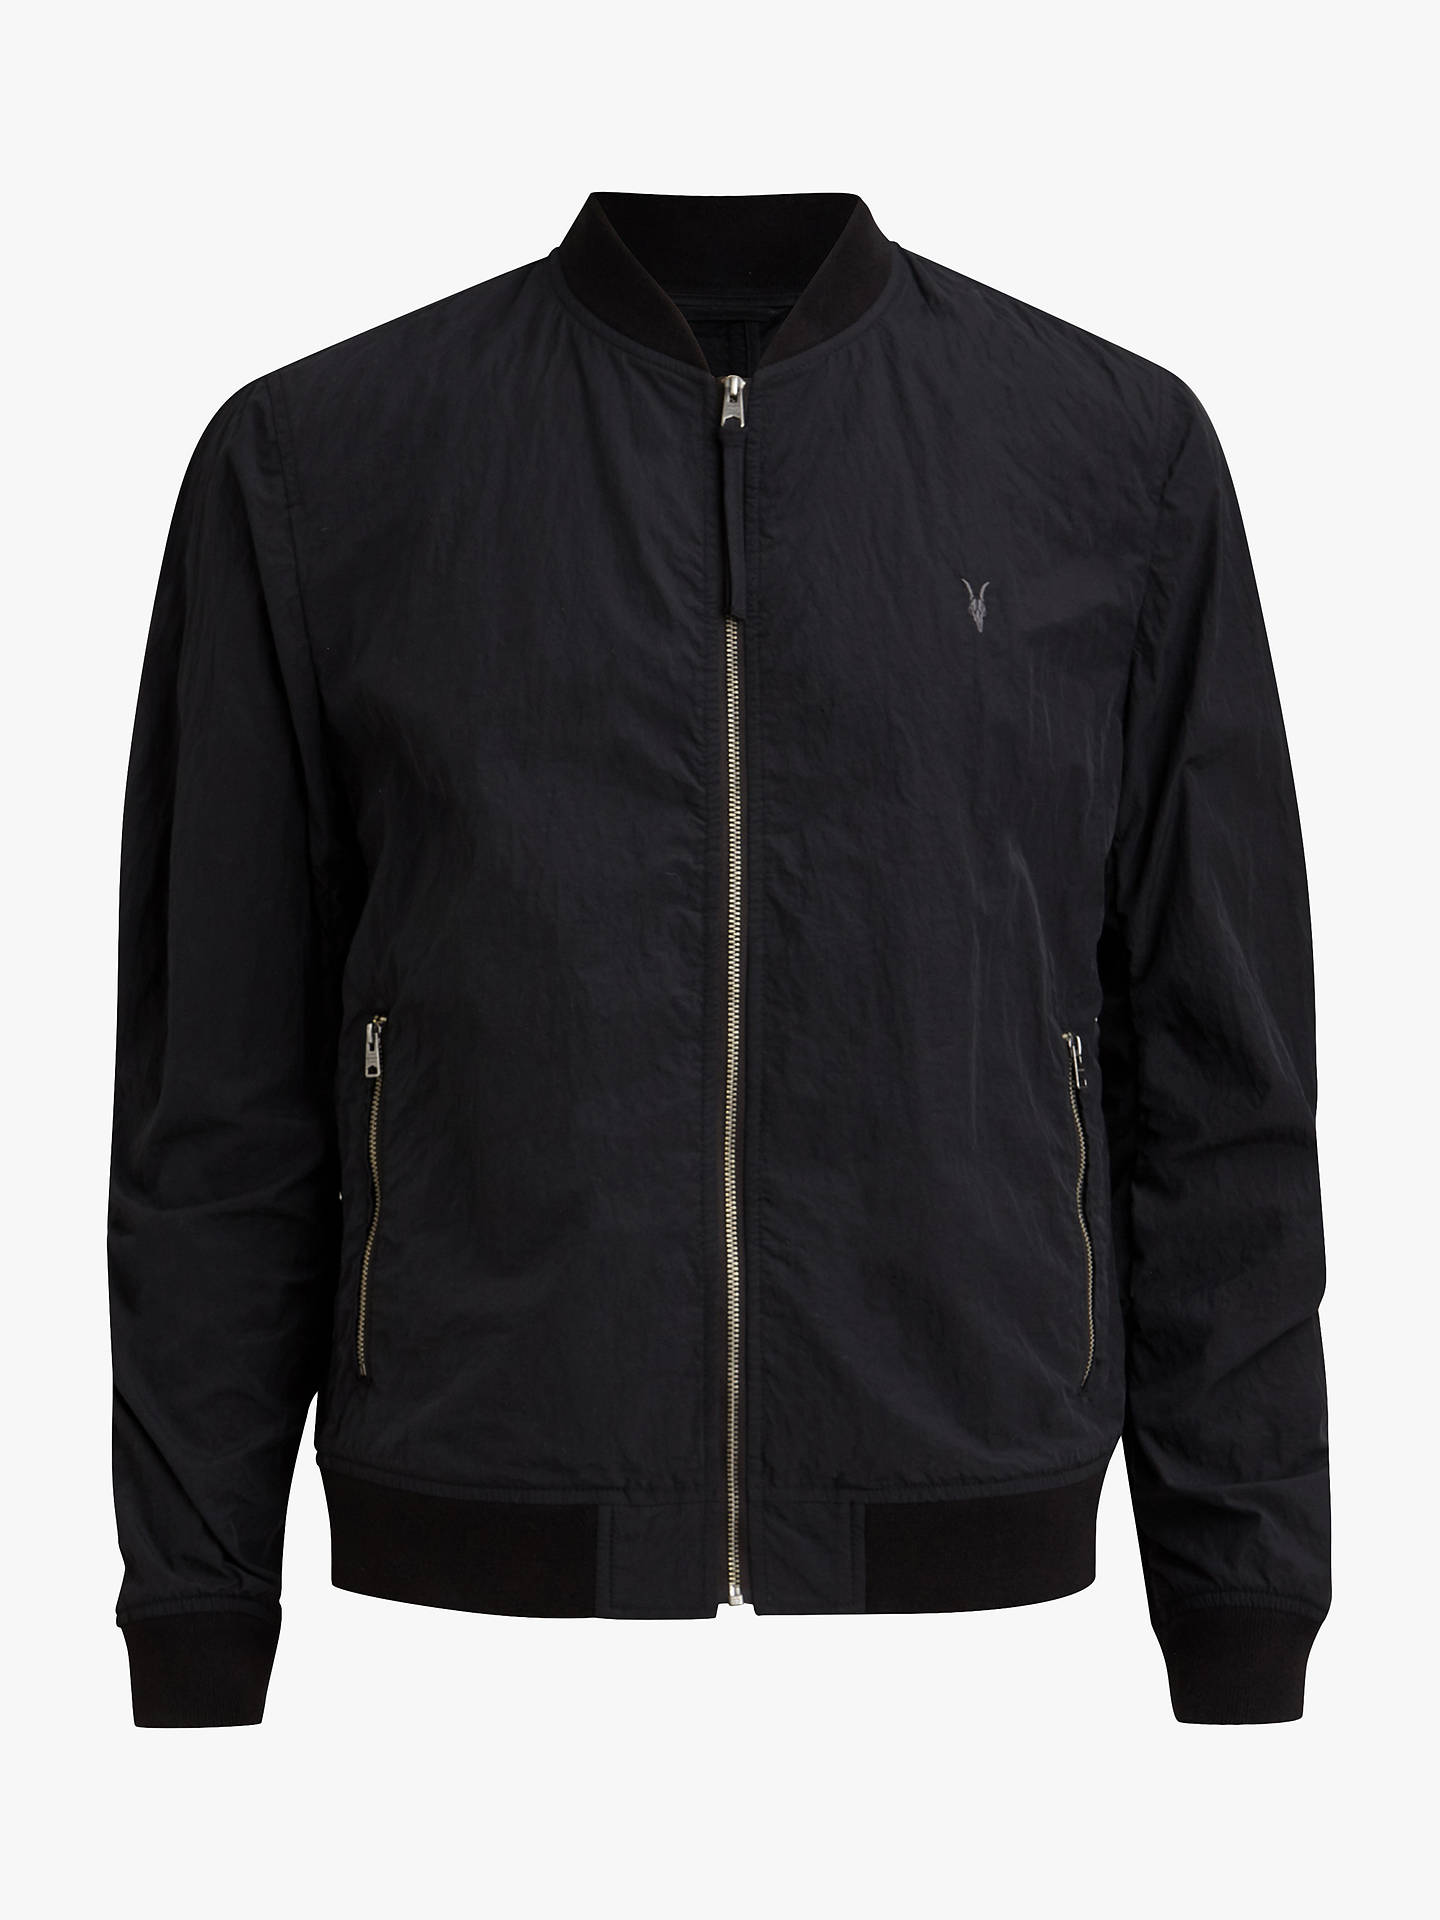 BuyAllSaints Fleet Bomber Jacket, Black, L Online at johnlewis.com